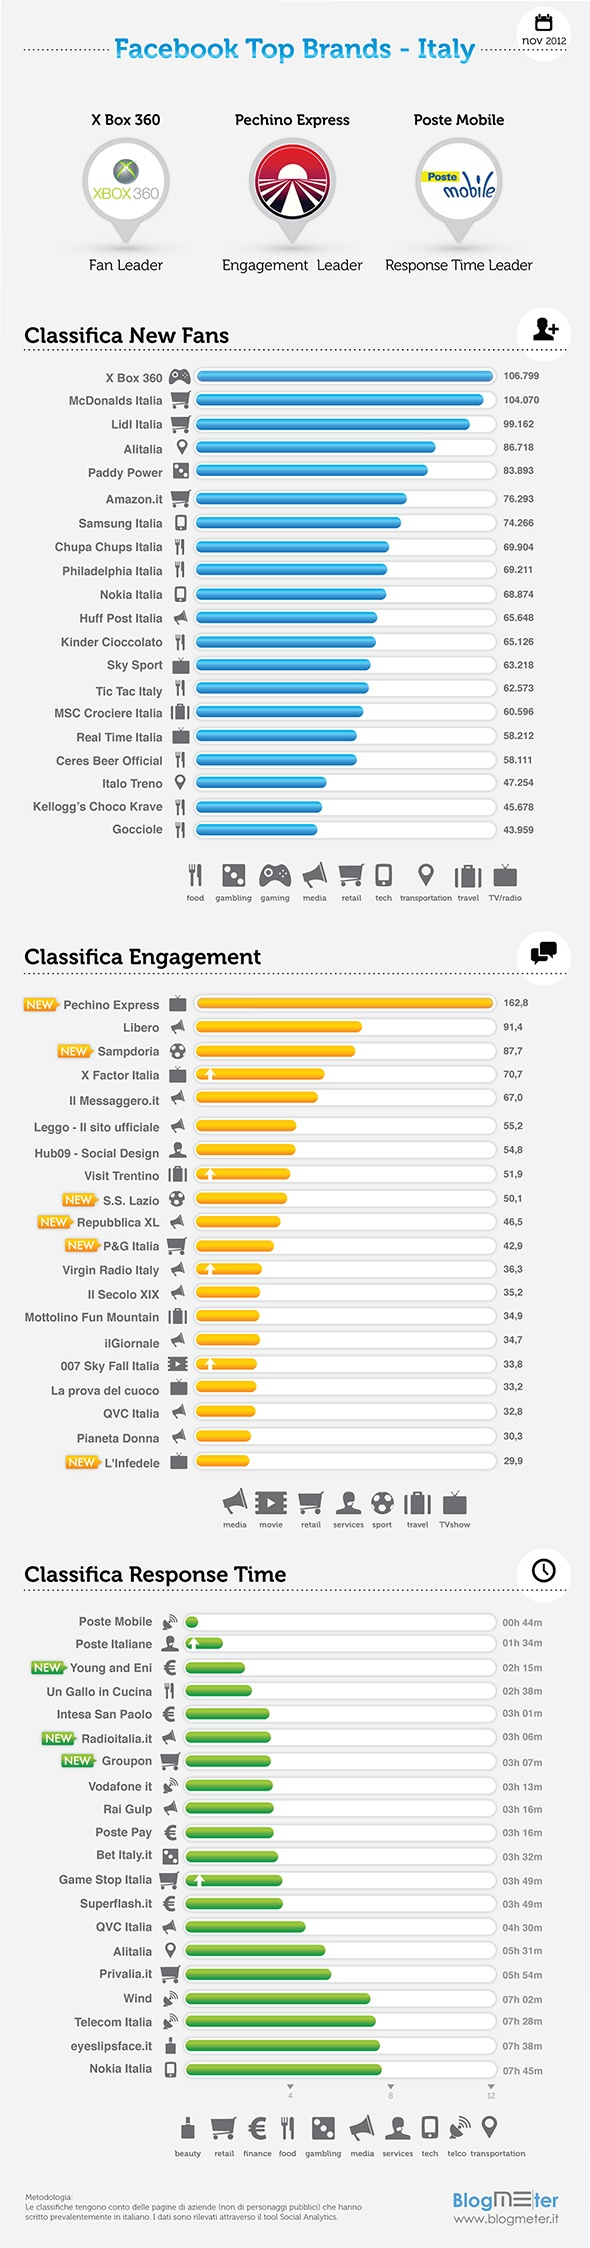 Blogmeter_Facebook Top Brands Novembre 2012 - Italia